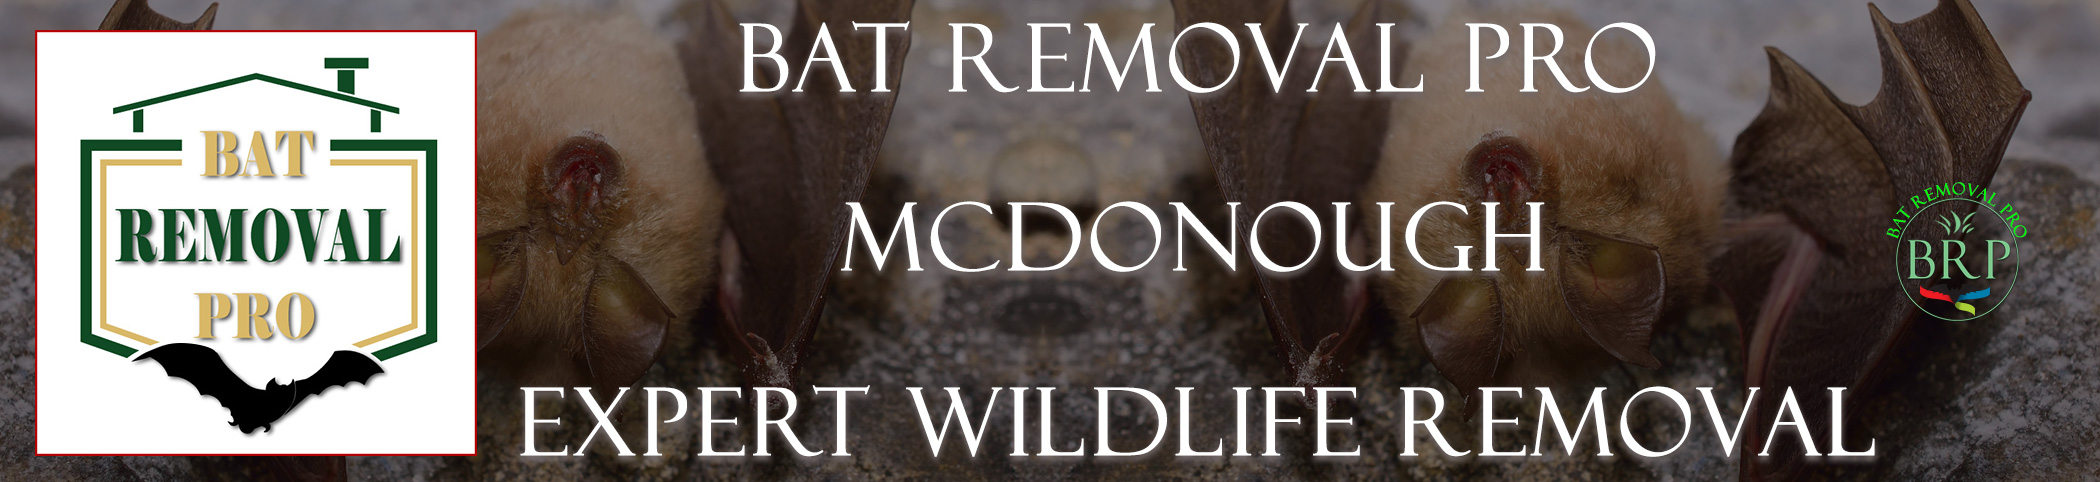 McDonough-bat-removal-at-bat-removal-pro-header-image